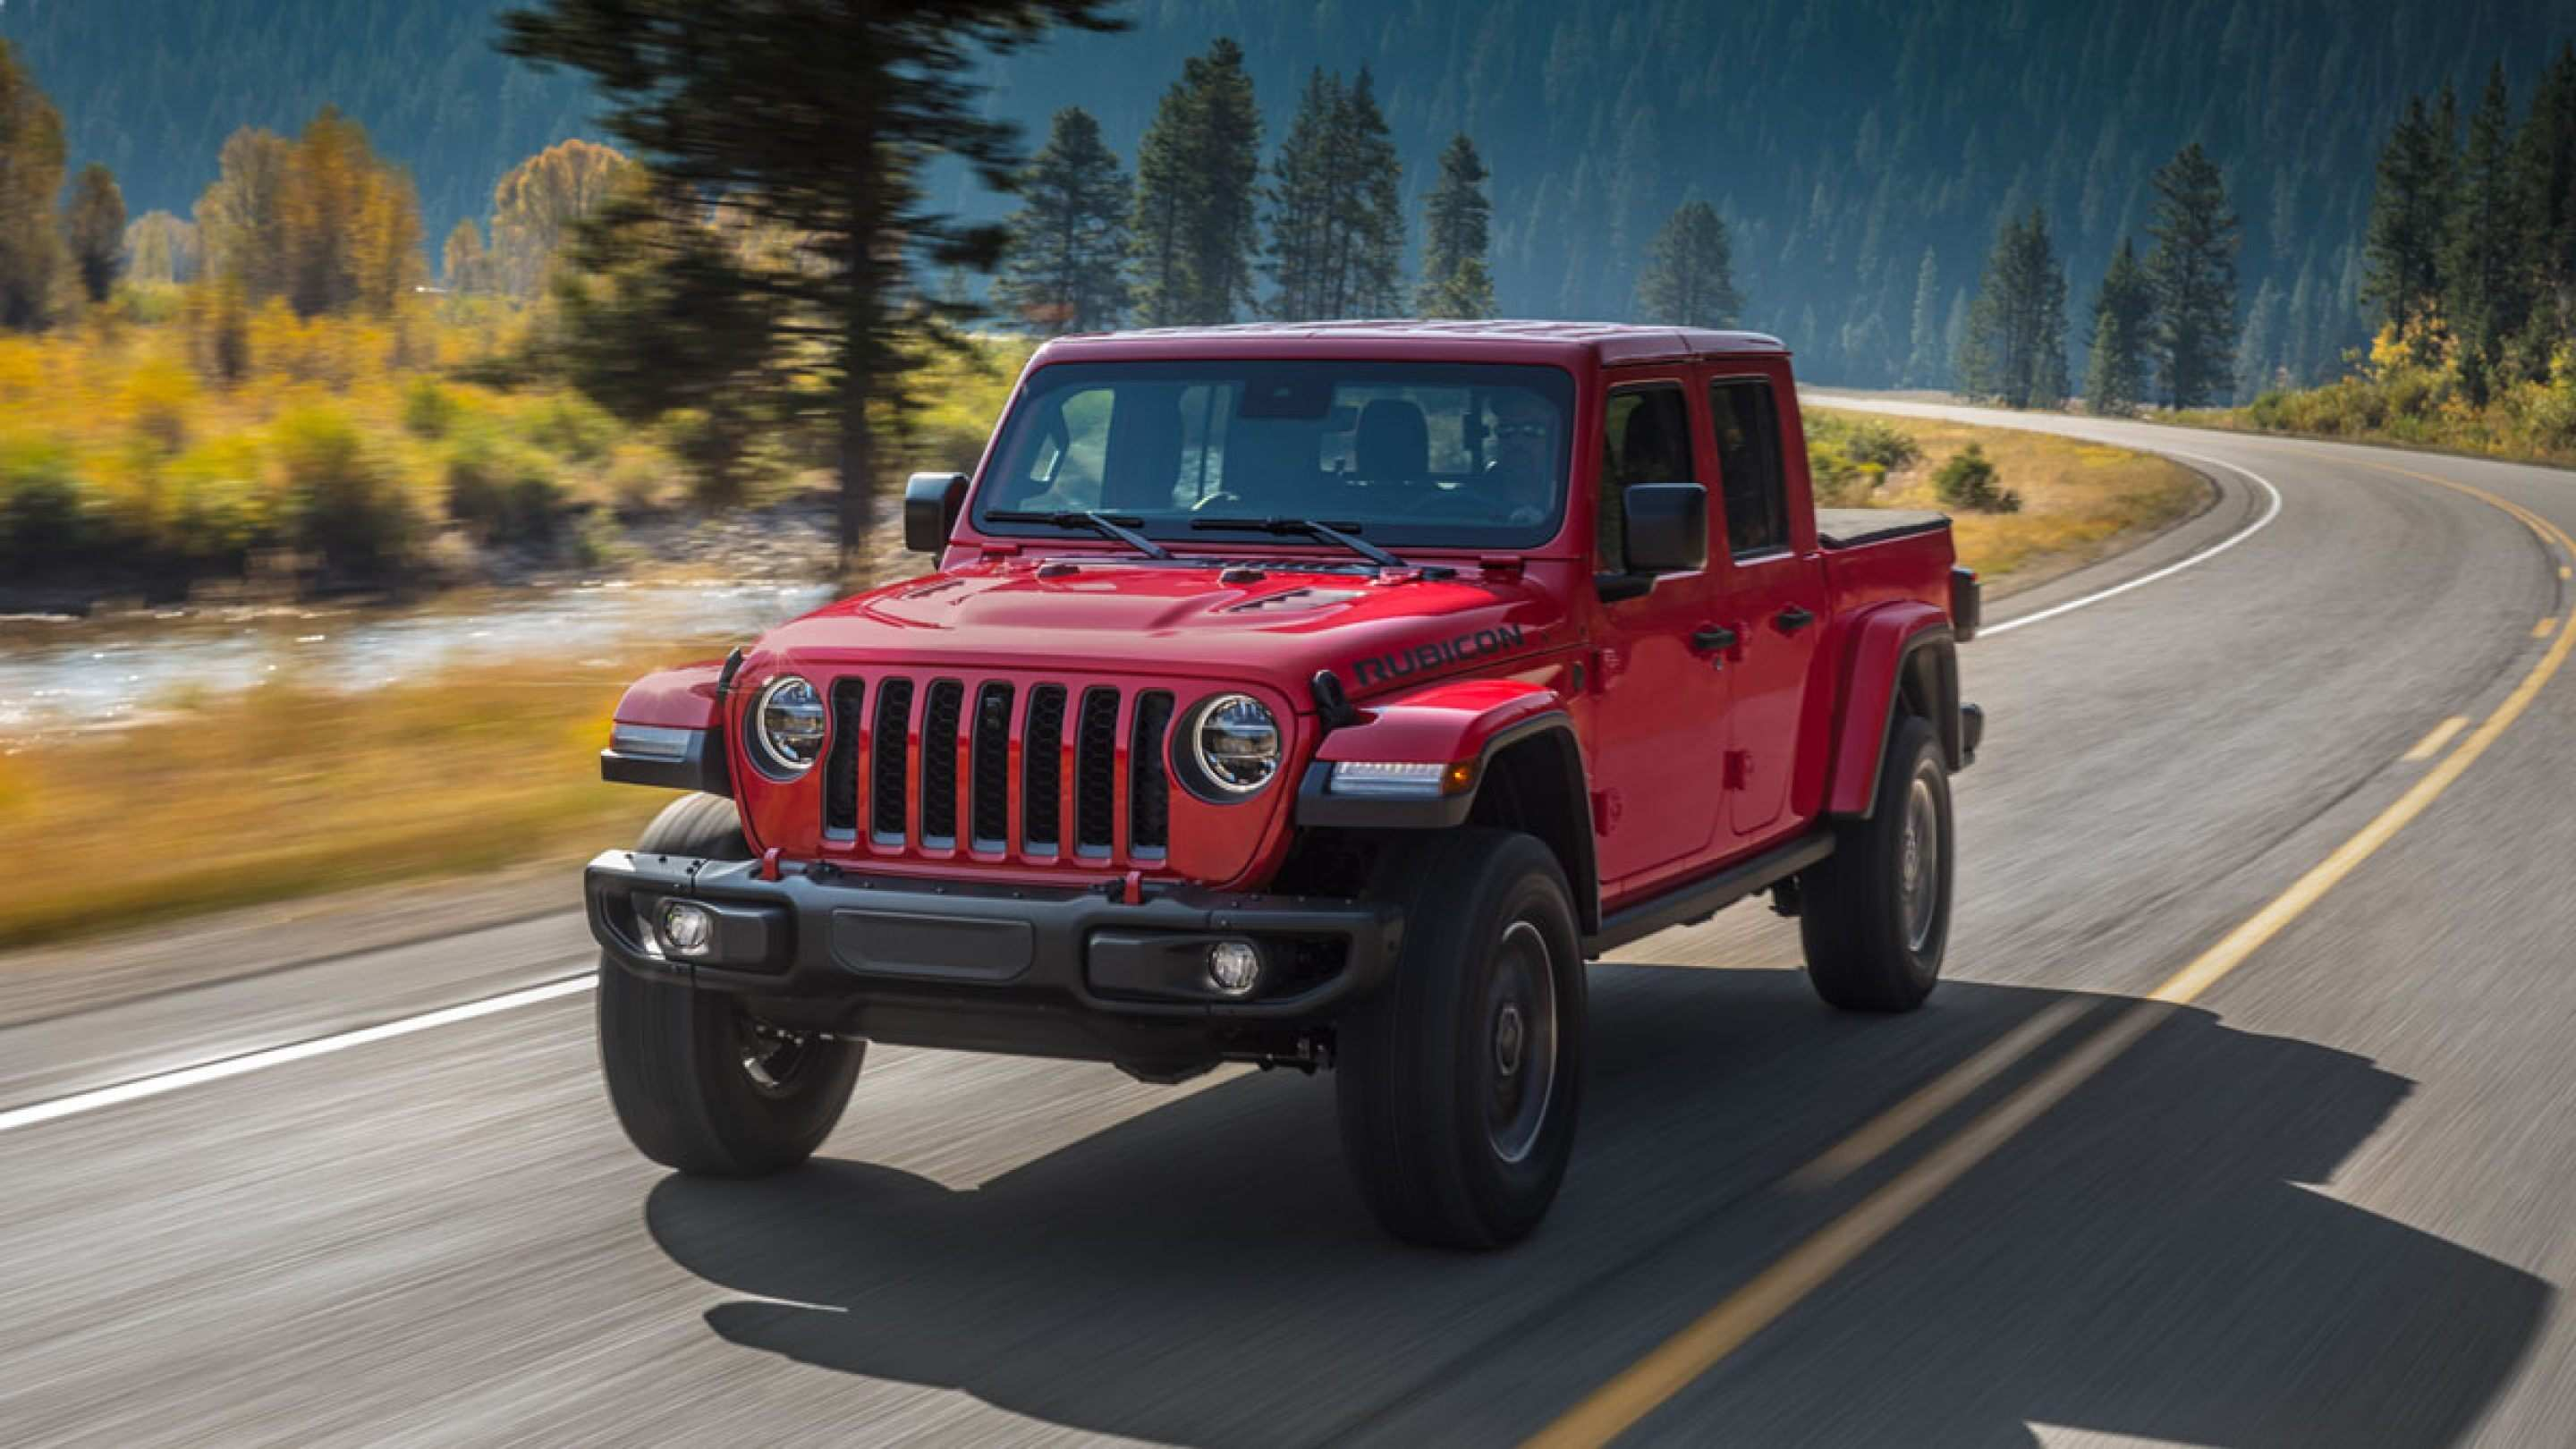 43 Gallery of 2020 Jeep Gladiator Engine Specs Spy Shoot for 2020 Jeep Gladiator Engine Specs